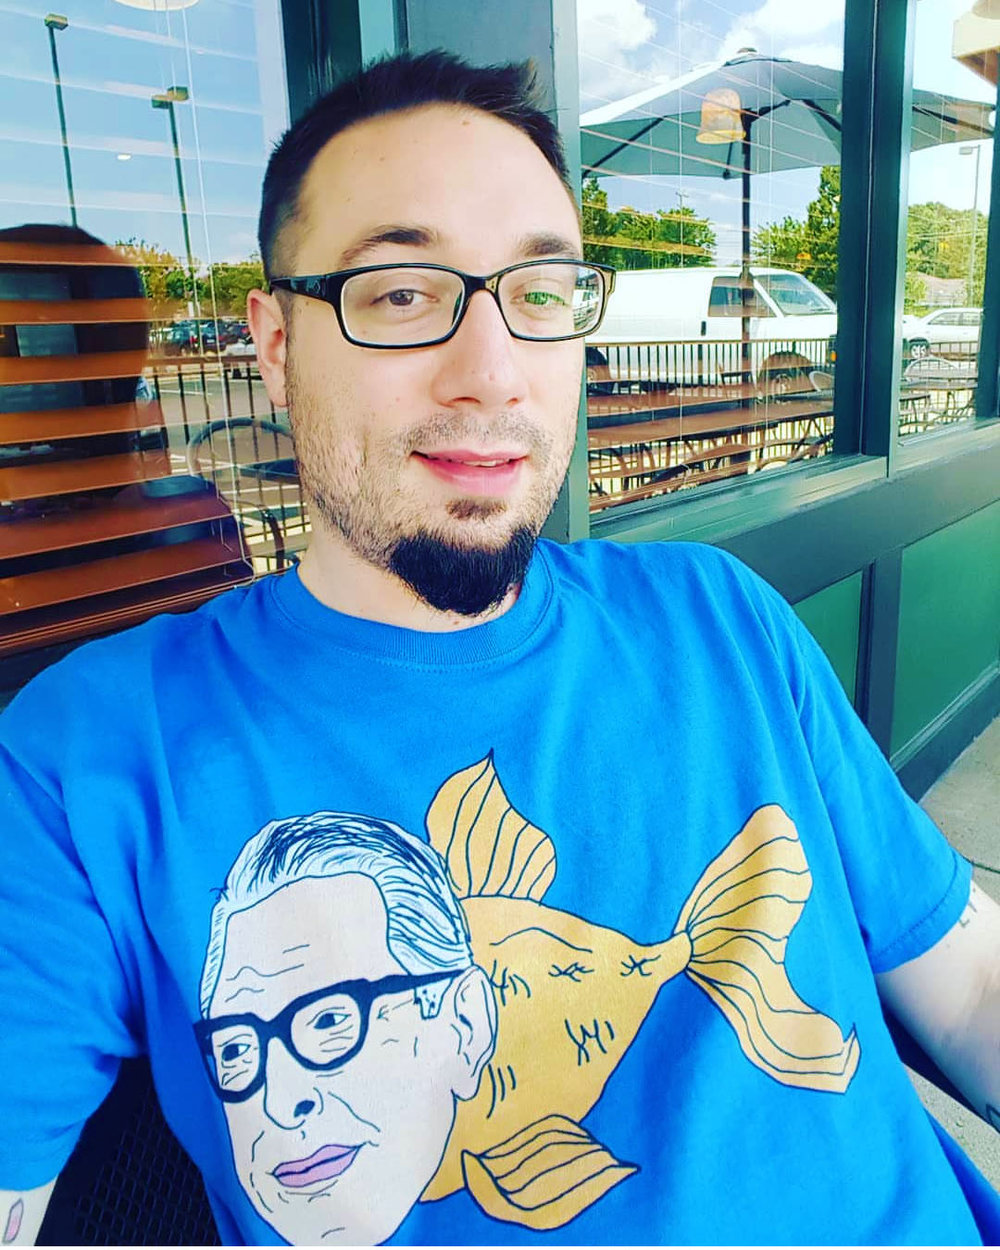 Daniel Peoples wearing Jeff Goldfish in North Carolina